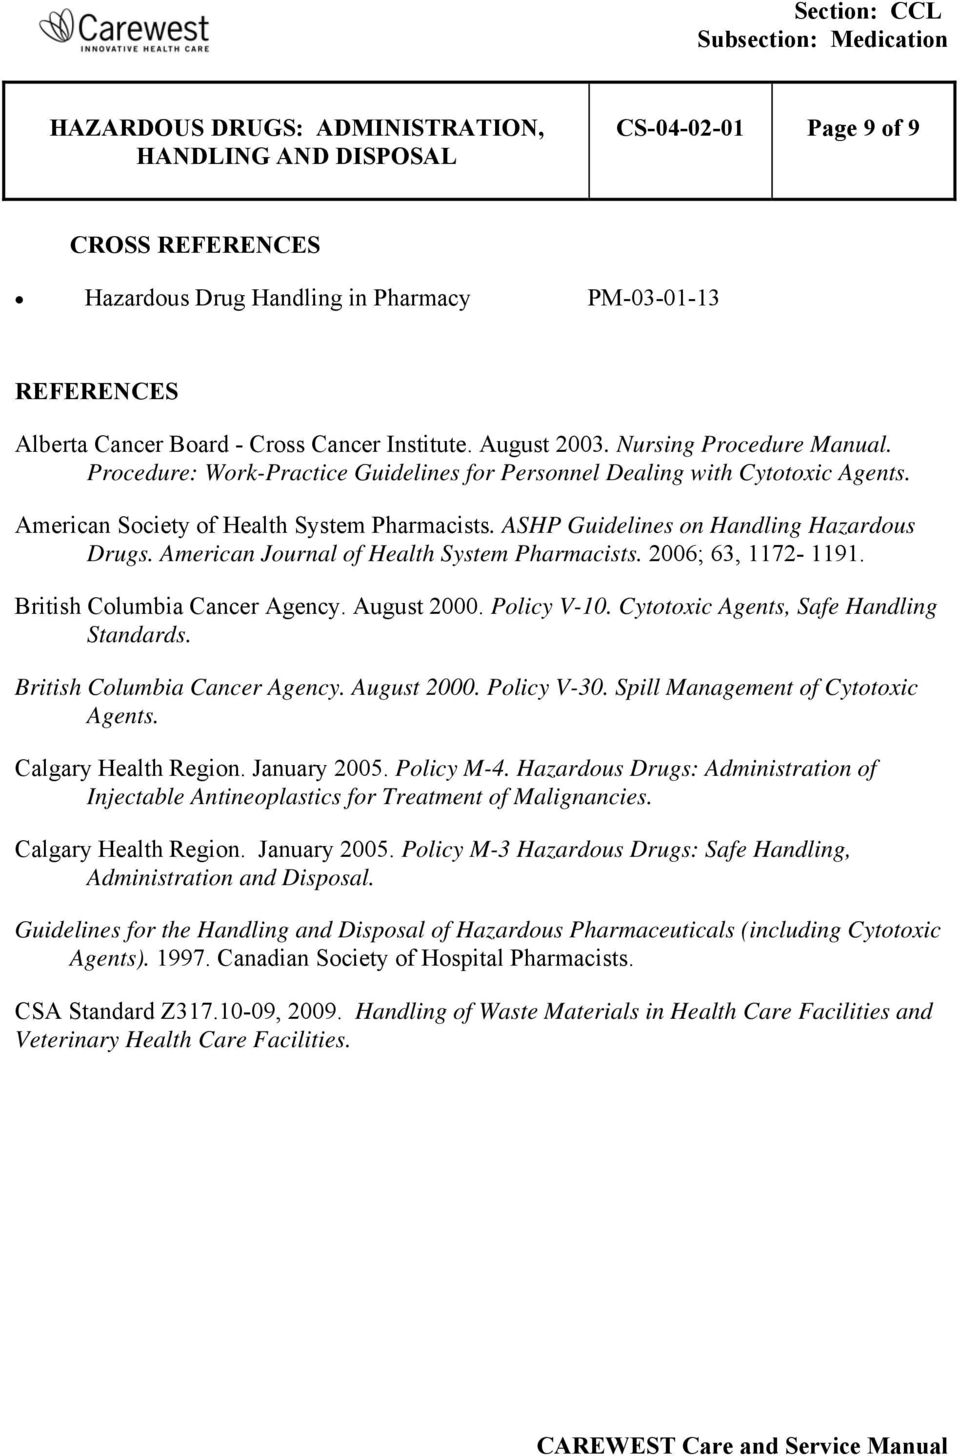 American Journal of Health System Pharmacists. 2006; 63, 1172-1191. British Columbia Cancer Agency. August 2000. Policy V-10. Cytotoxic Agents, Safe Handling Standards. British Columbia Cancer Agency. August 2000. Policy V-30.